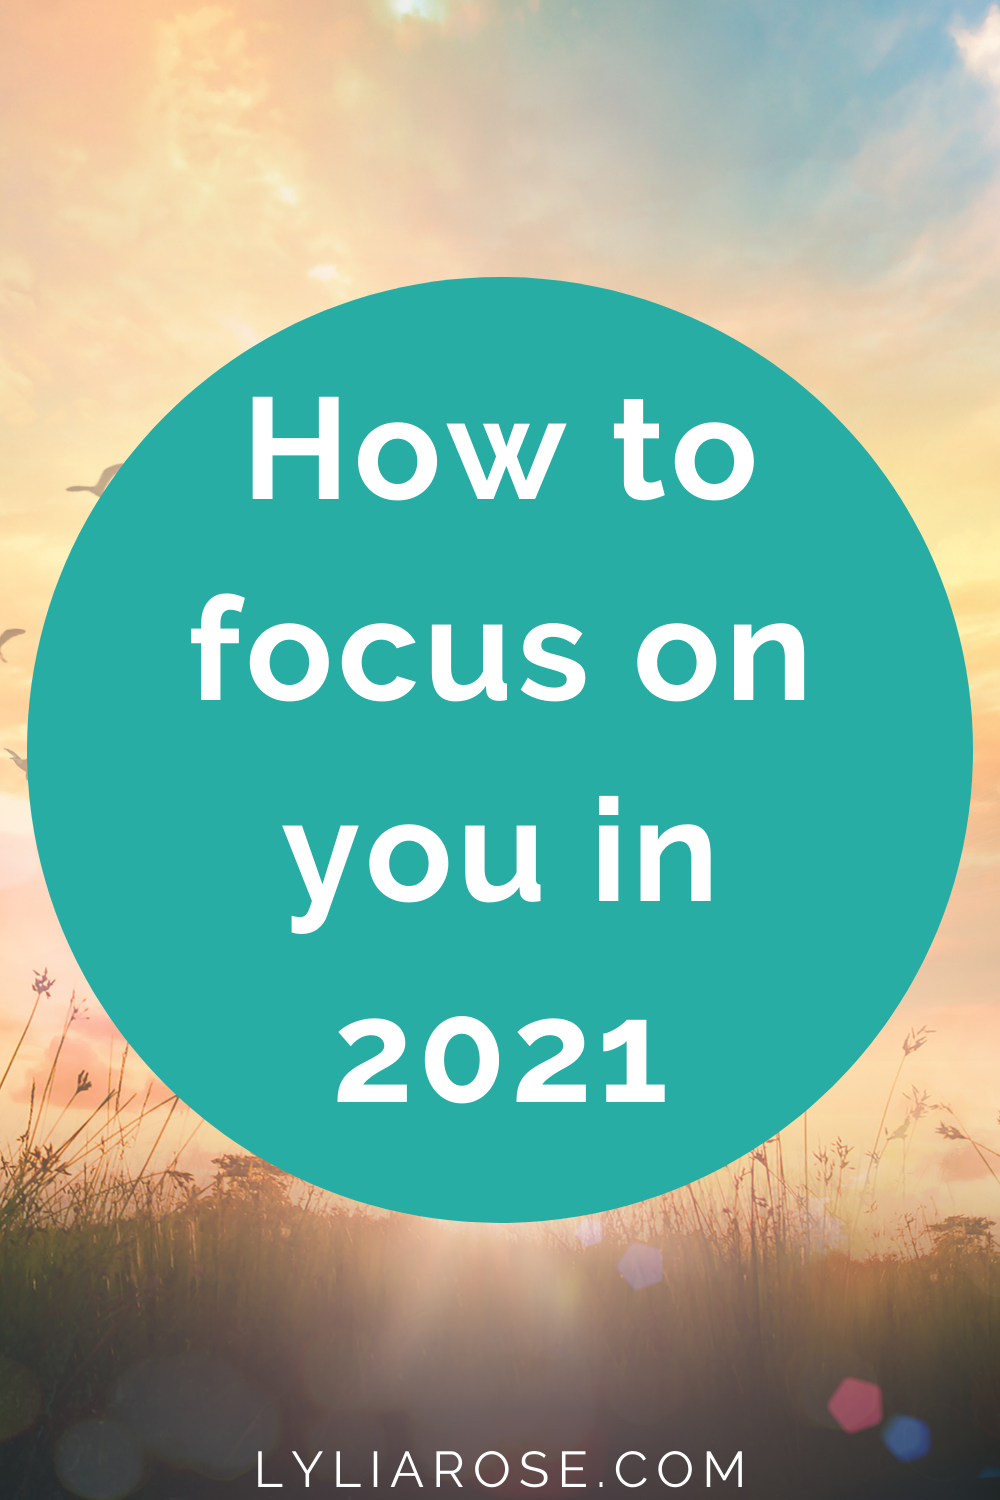 How to focus on you in 2021